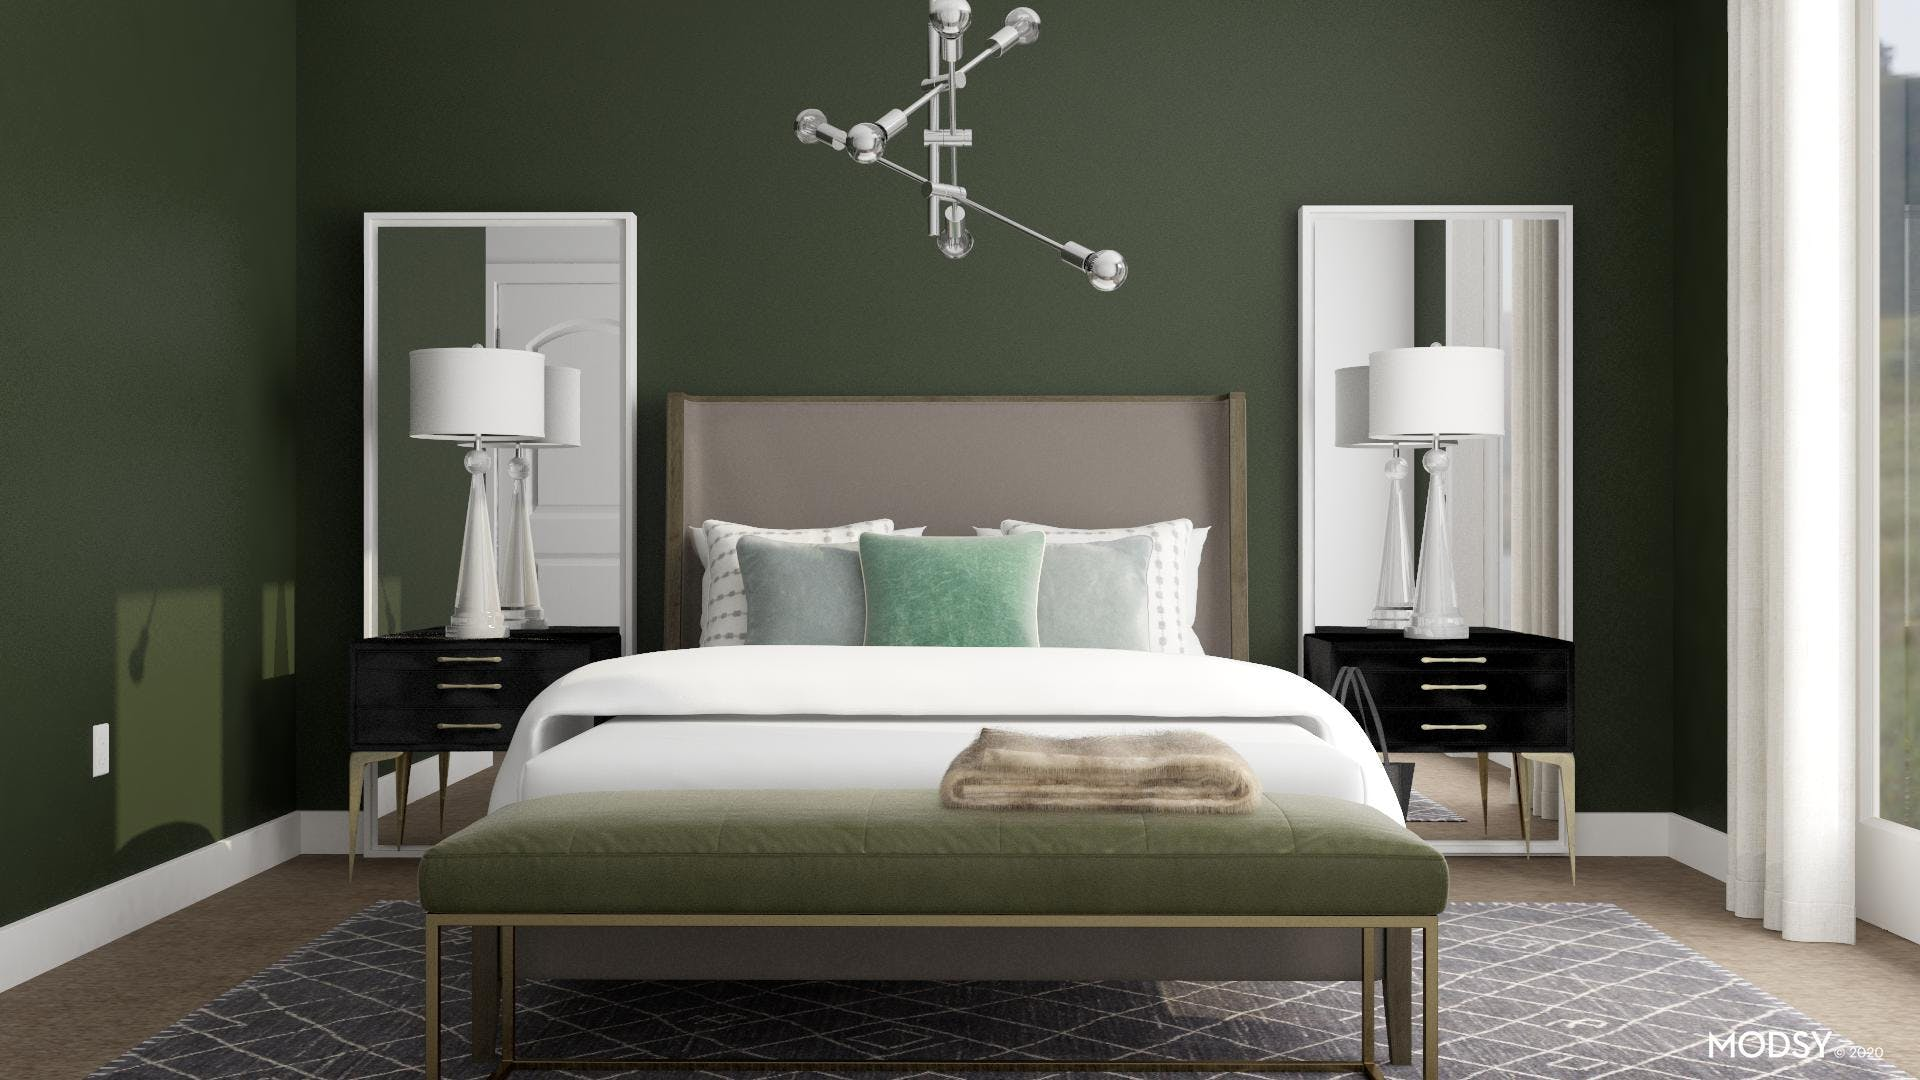 A Modern Green Bedroom